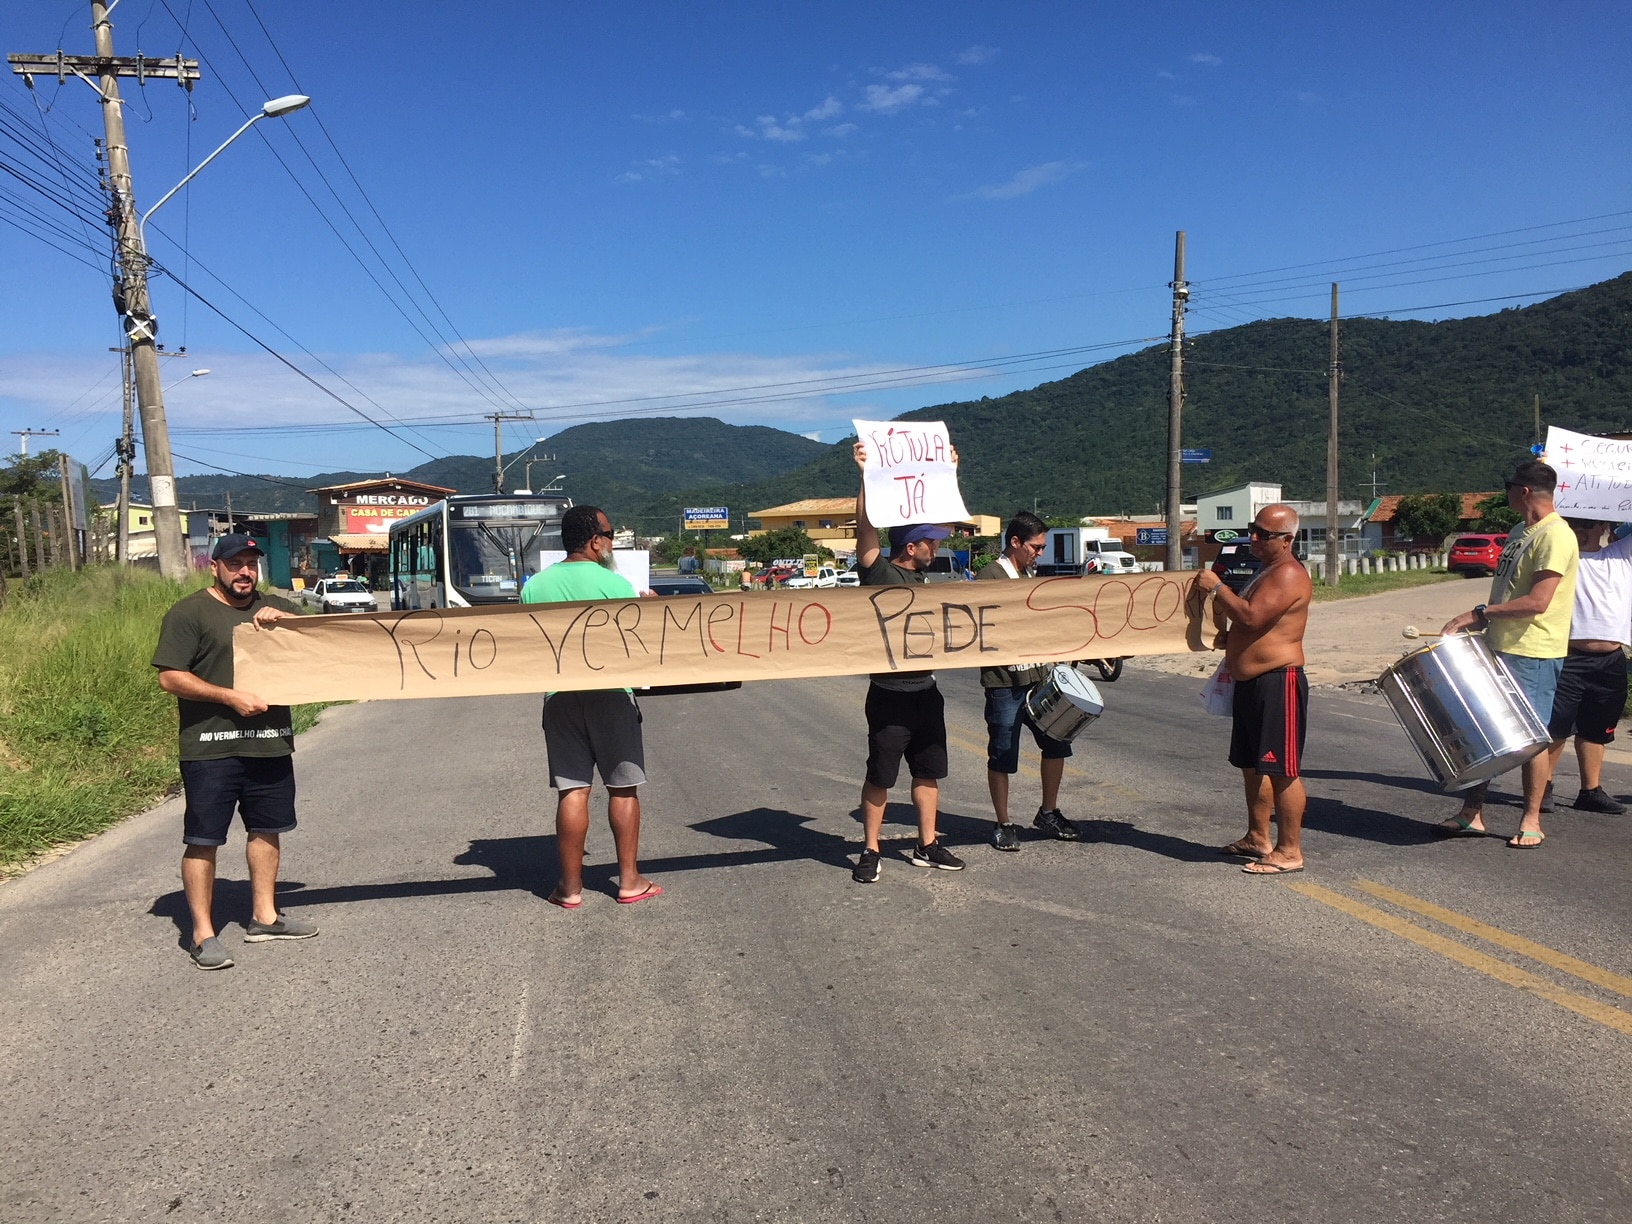 protesto-travessao-floripa-rotatoria-05